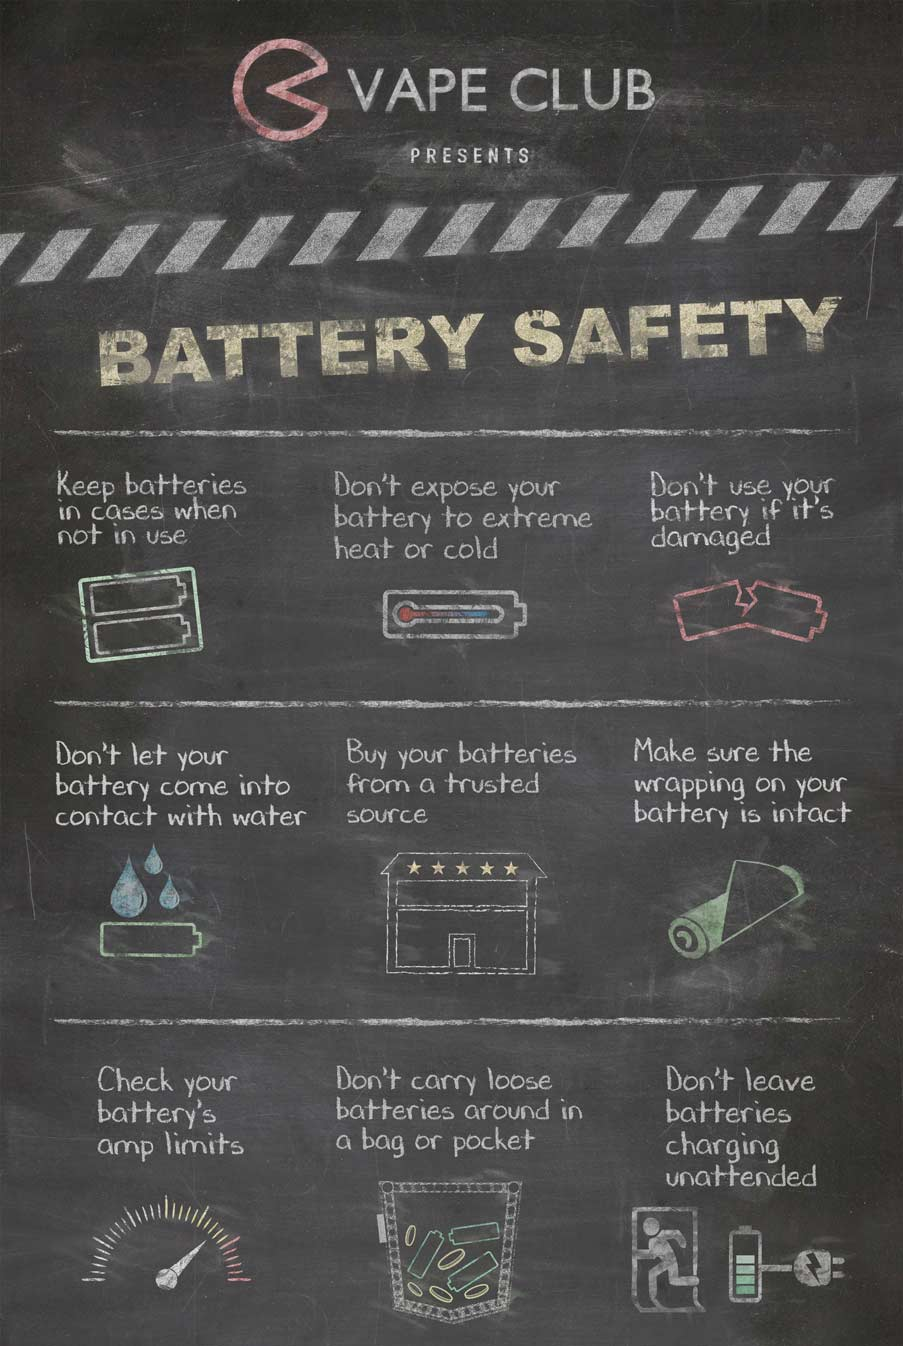 electronic-cigarette-vaping-battery-safety-infographic.jpg